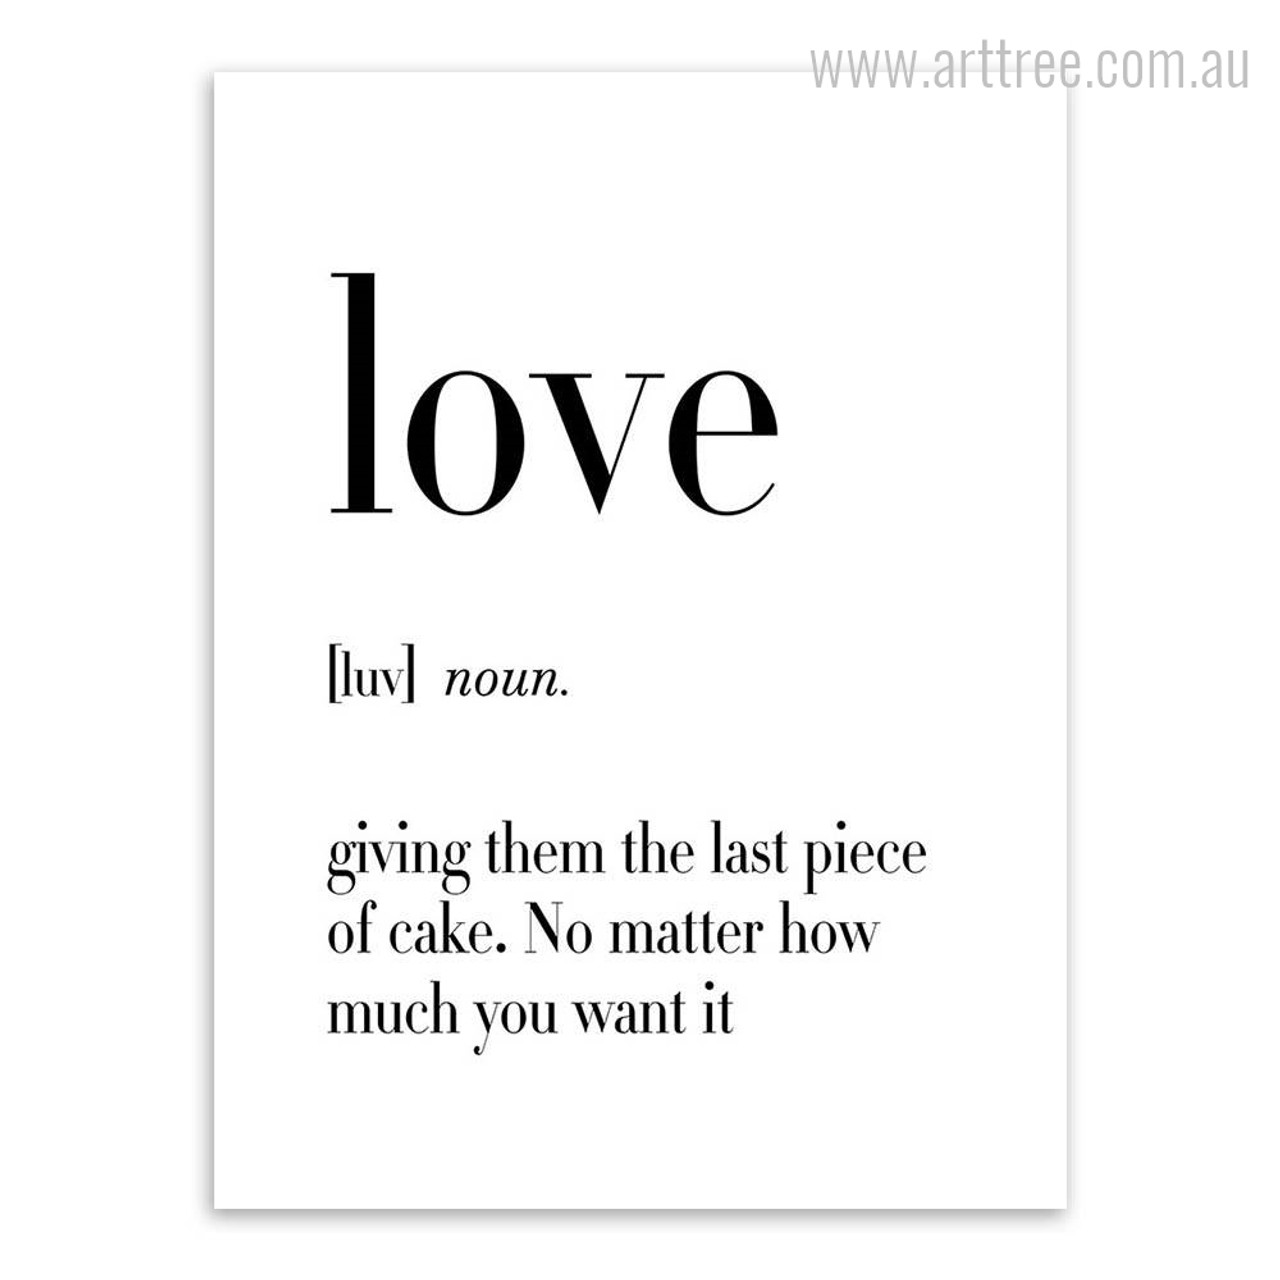 The Meaning Of Love Quotes: Arttree